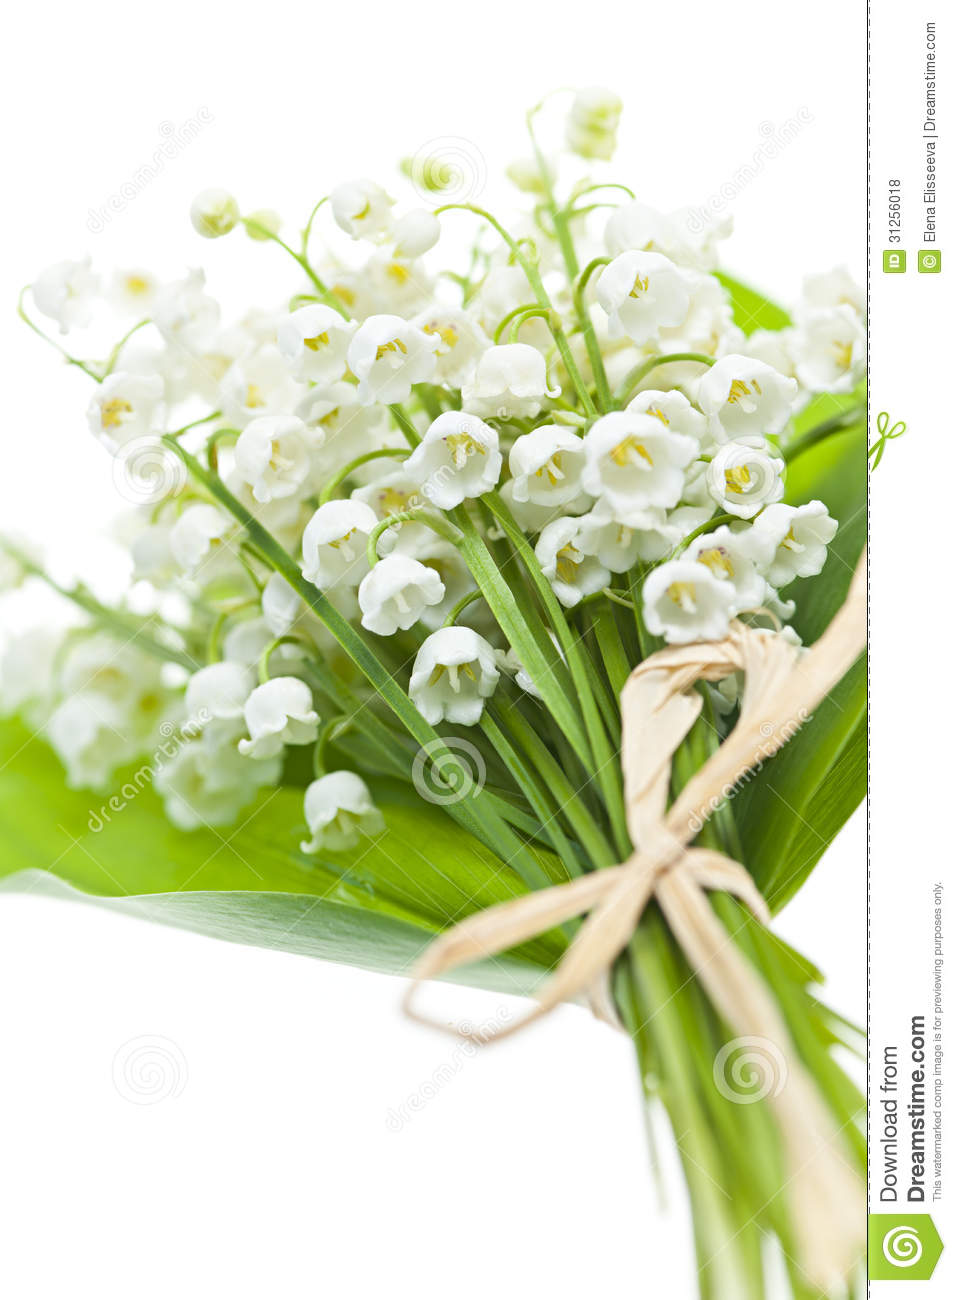 Fleurs du muguet sur le blanc photos libres de droits - Bouquet de muguet photo ...